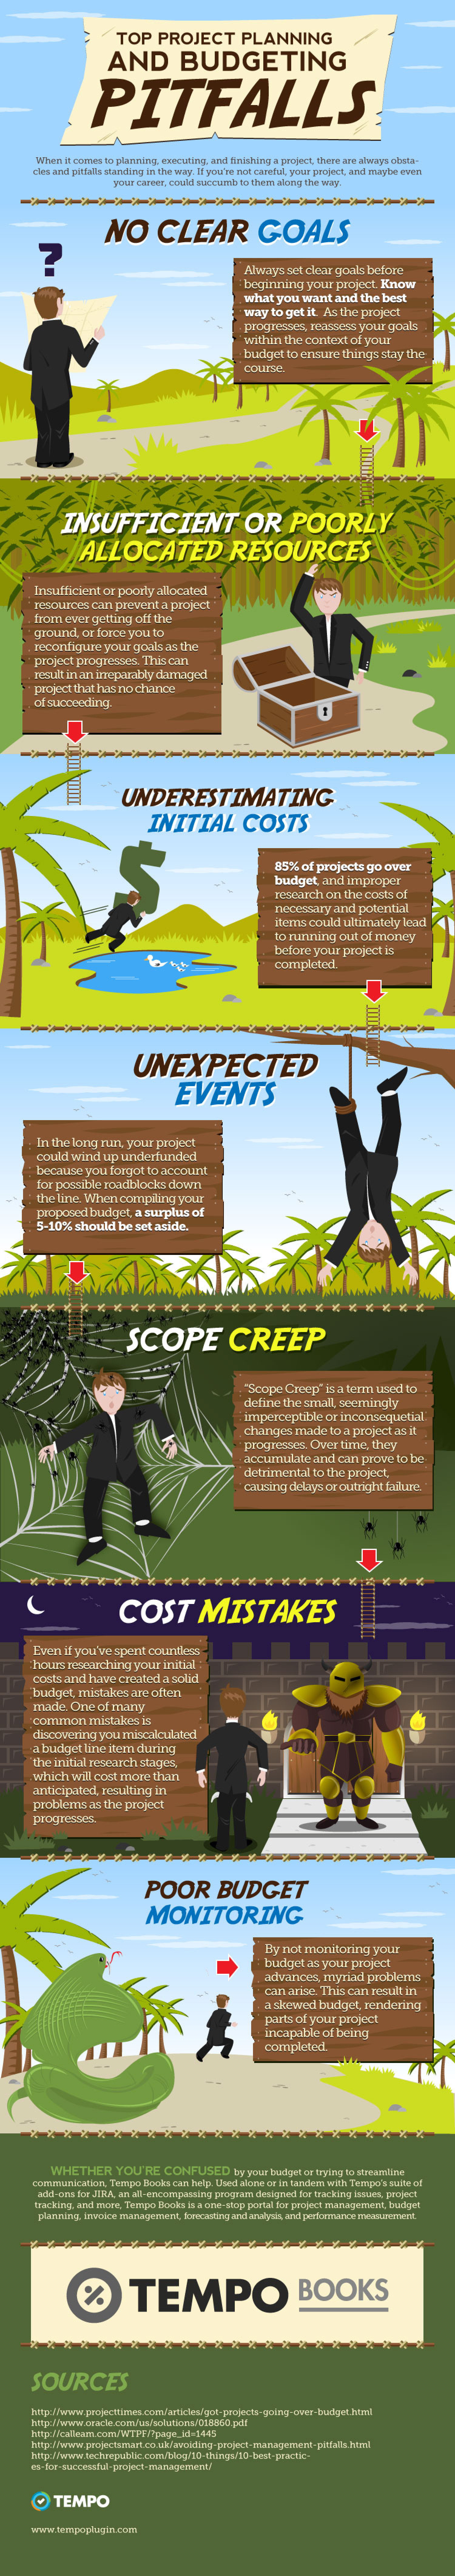 Top Project Planning and Budgeting Pitfalls Infographic